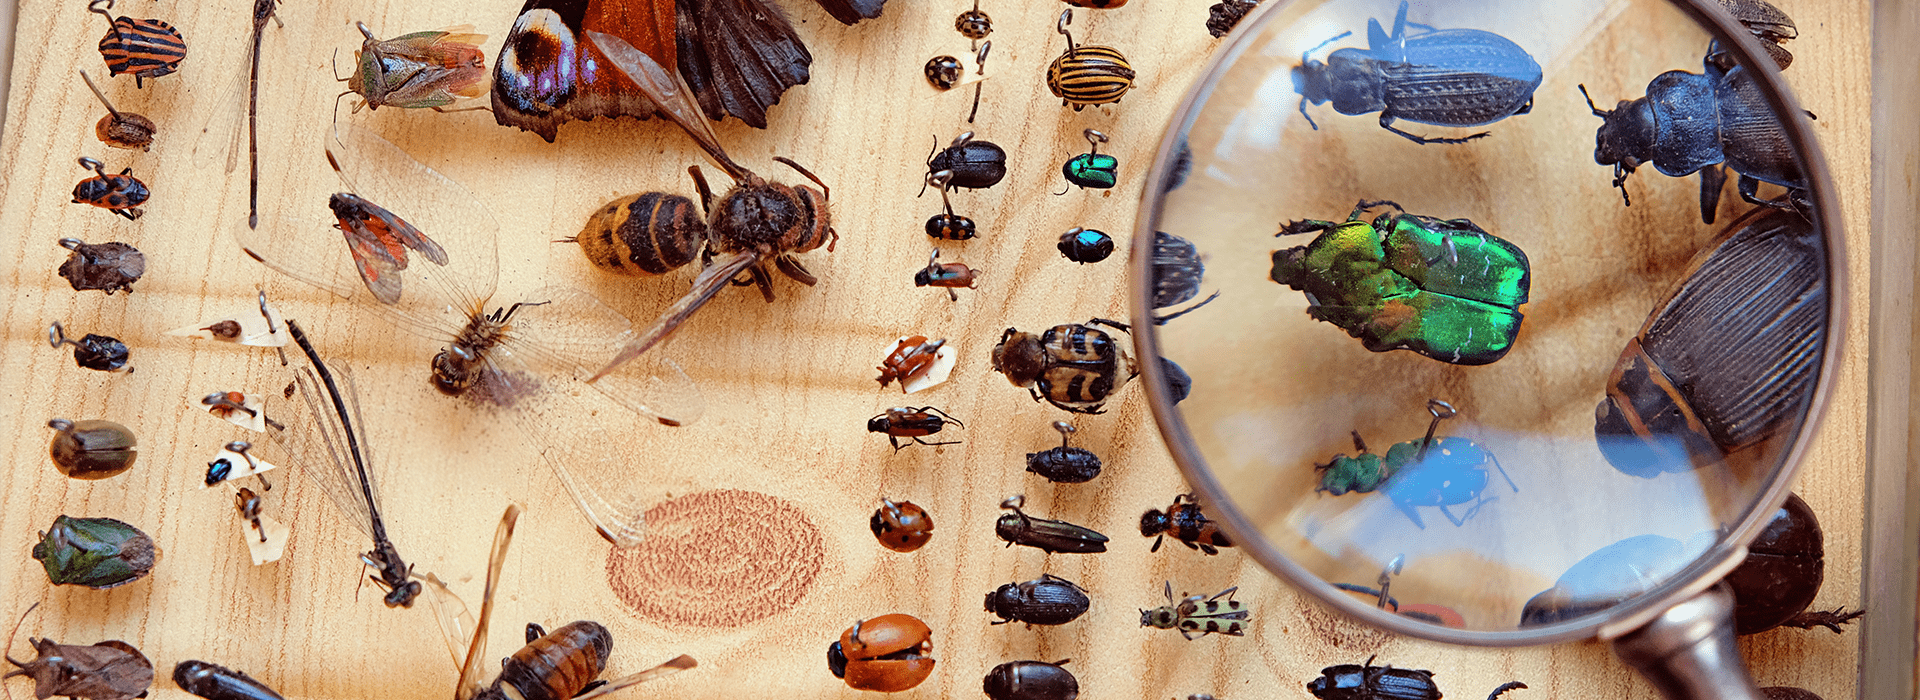 an entomology display case in dekalb illinois